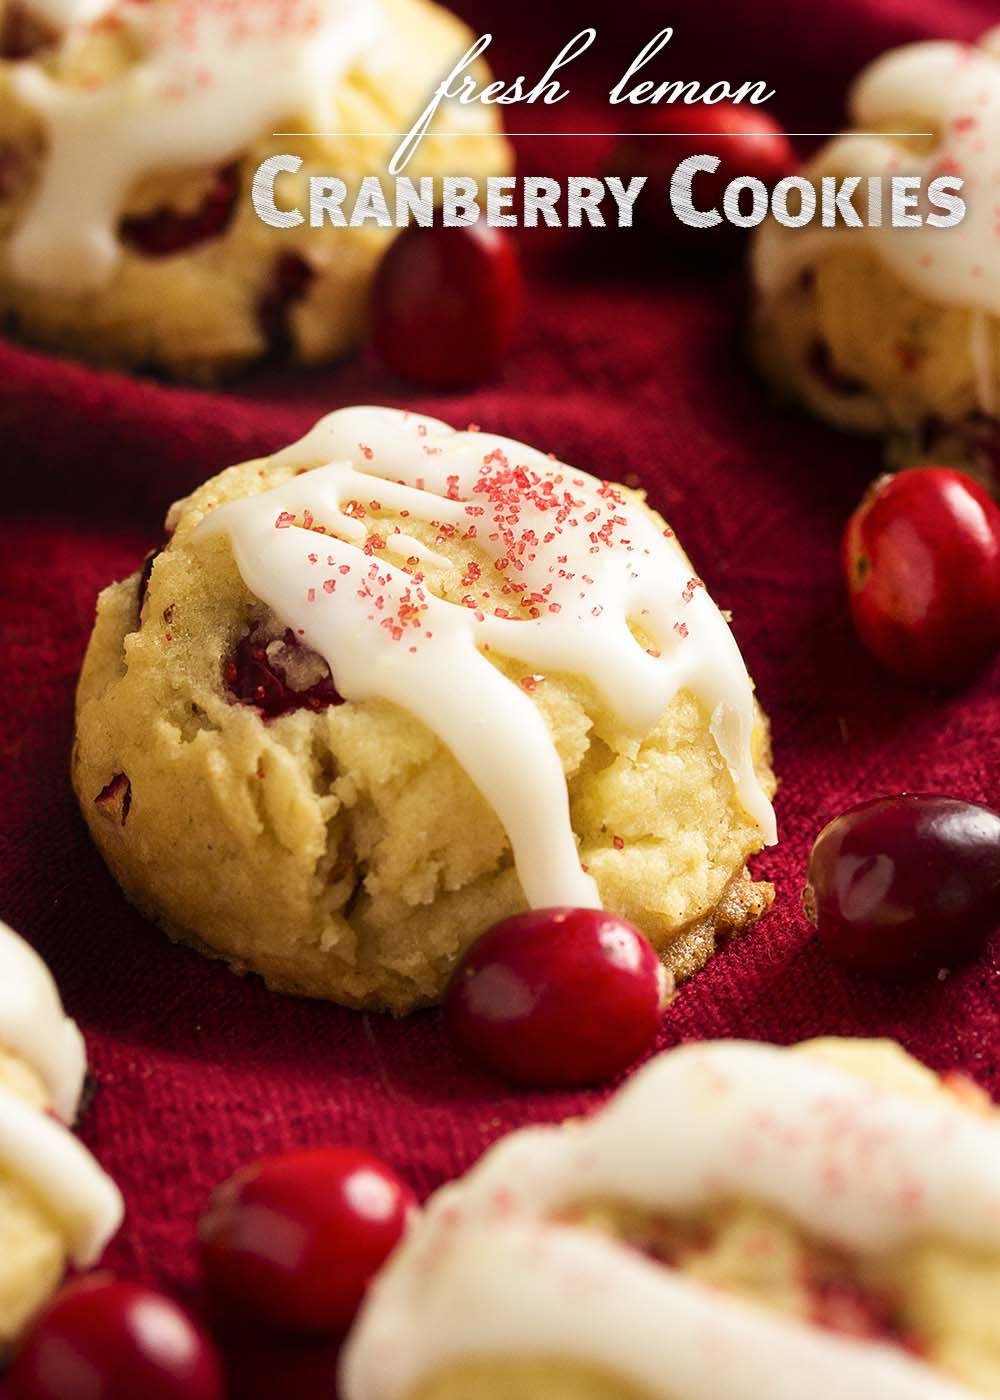 The fresh cranberries in these fresh cranberry cookies give them such a bright and zingy flavor which is completely different from dried cranberries! Don't just use fresh cranberries for sauce. Make cookies!   justalittlebitofbacon.com